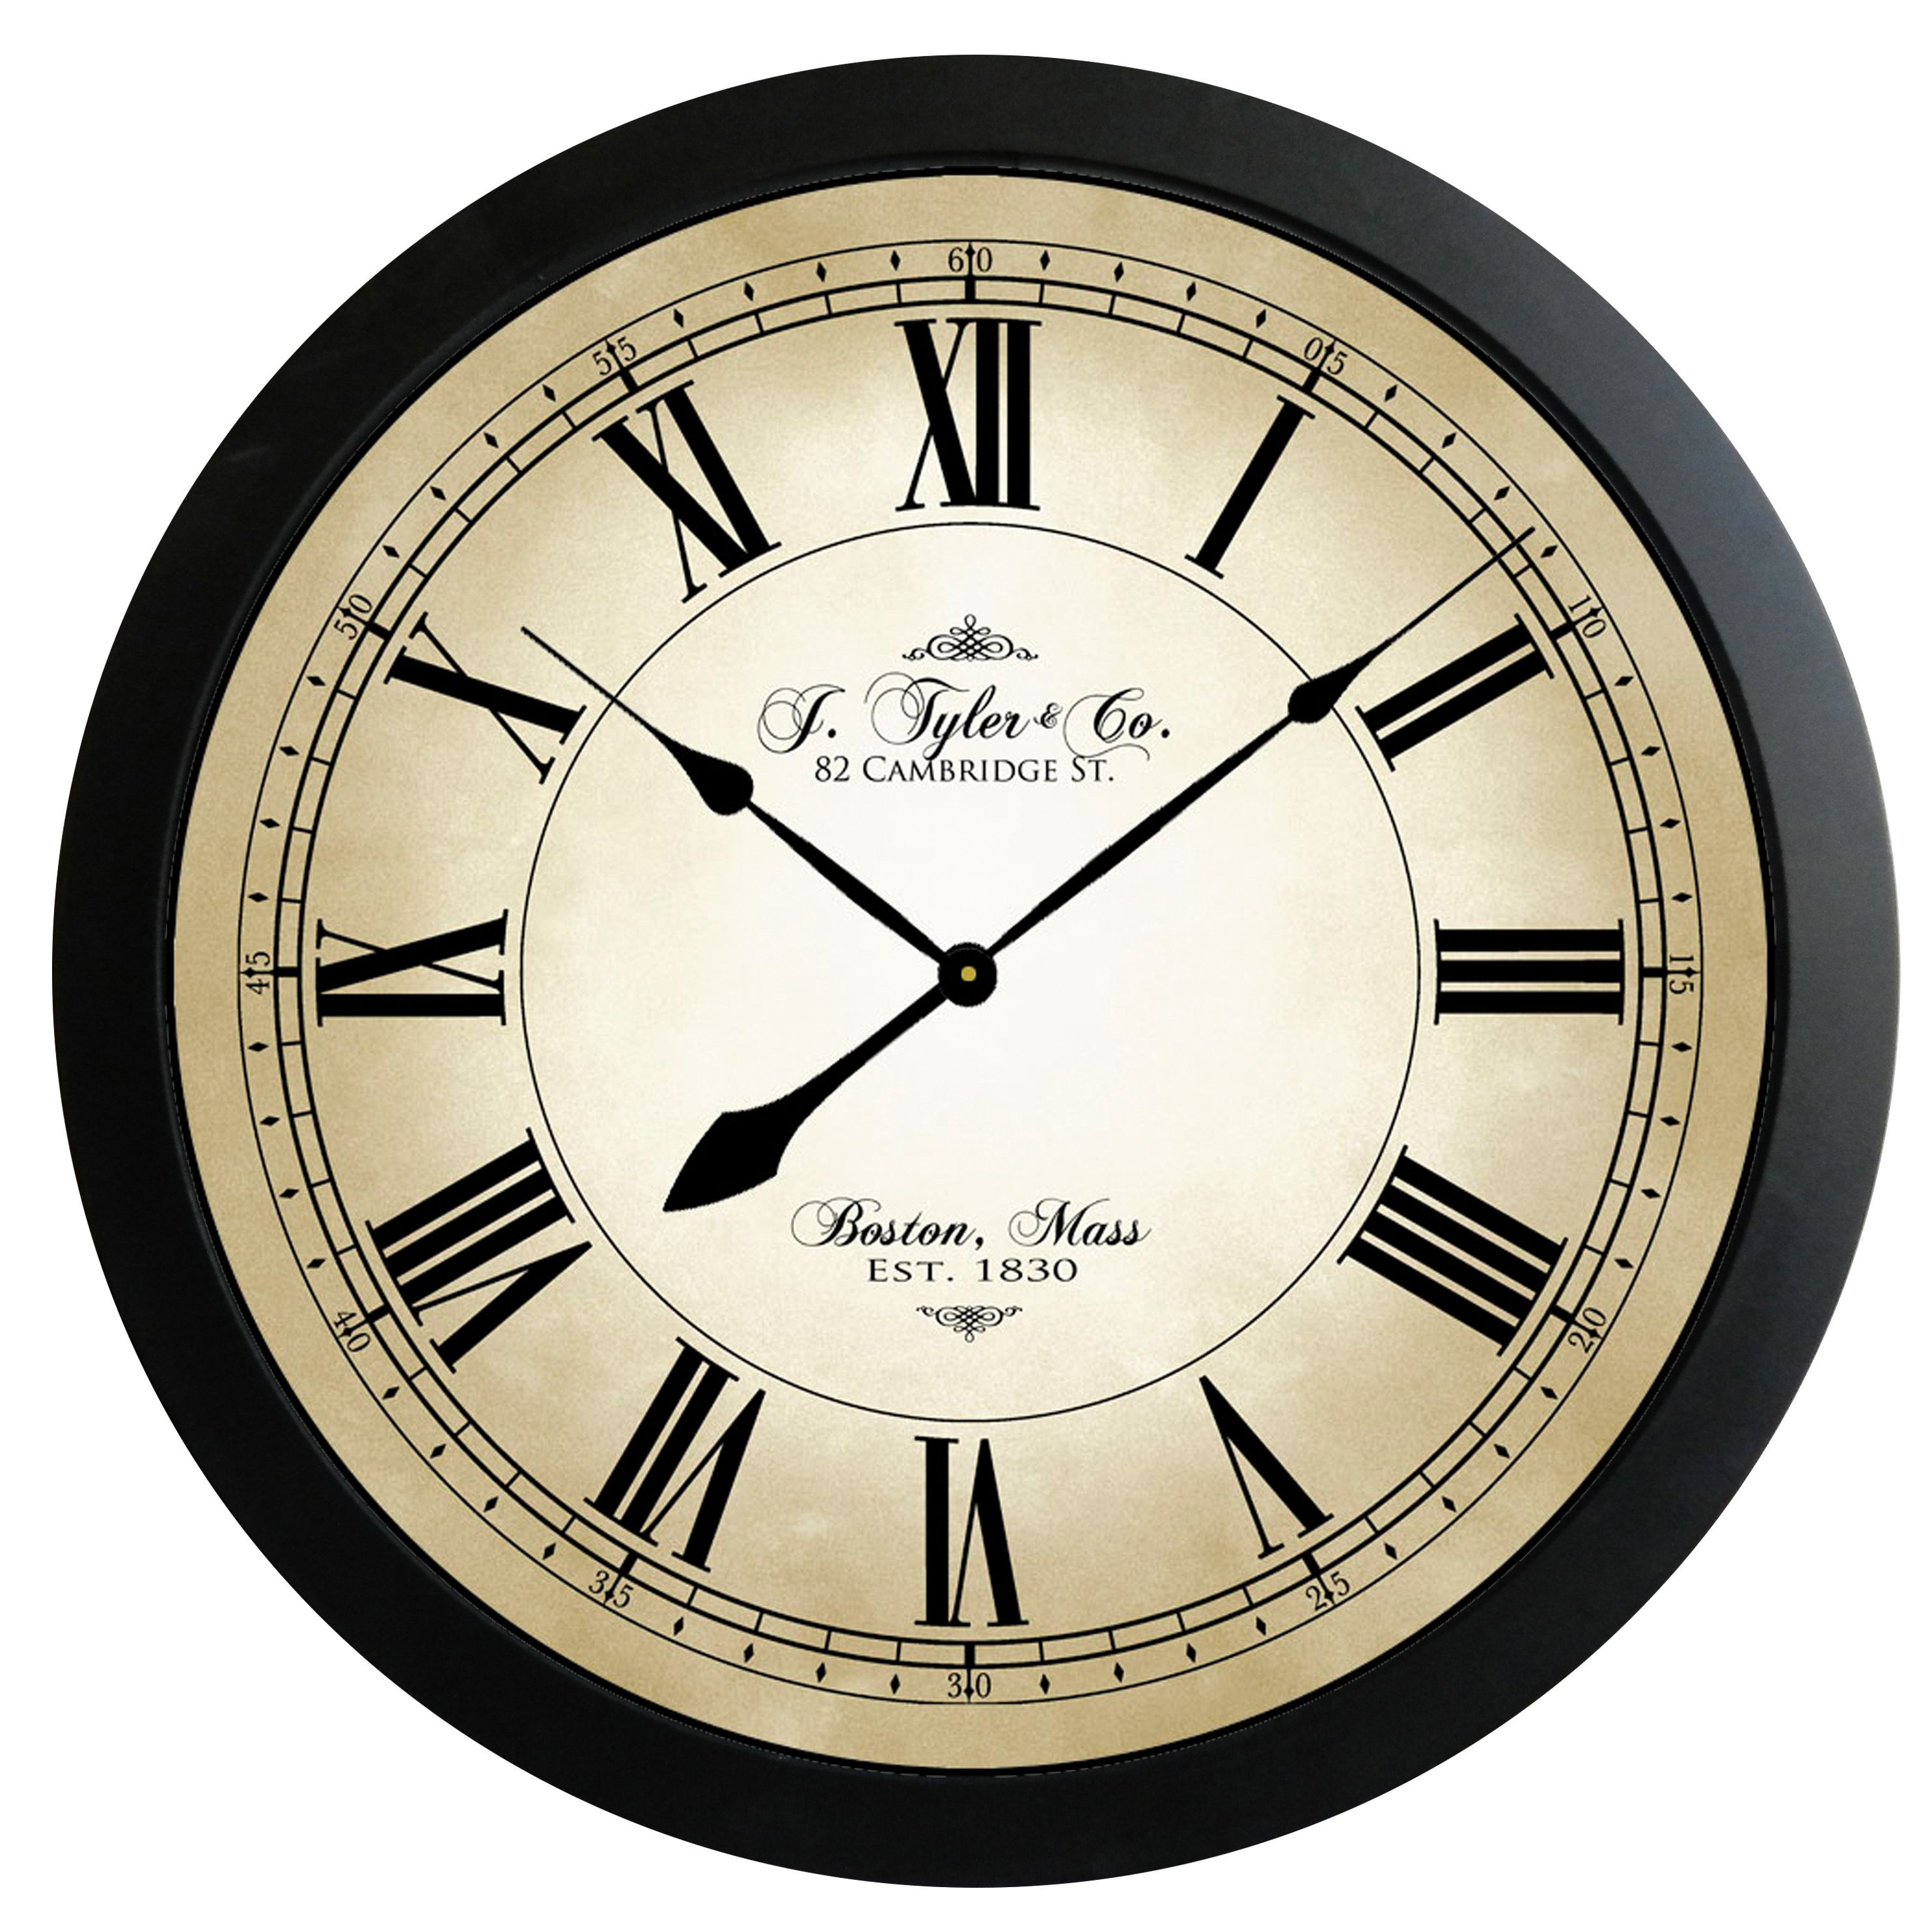 Fairwind clock 12 18 24 30 36 48 60 the big clock large wall clock fairwind clock whisper quiet non ticking amipublicfo Image collections